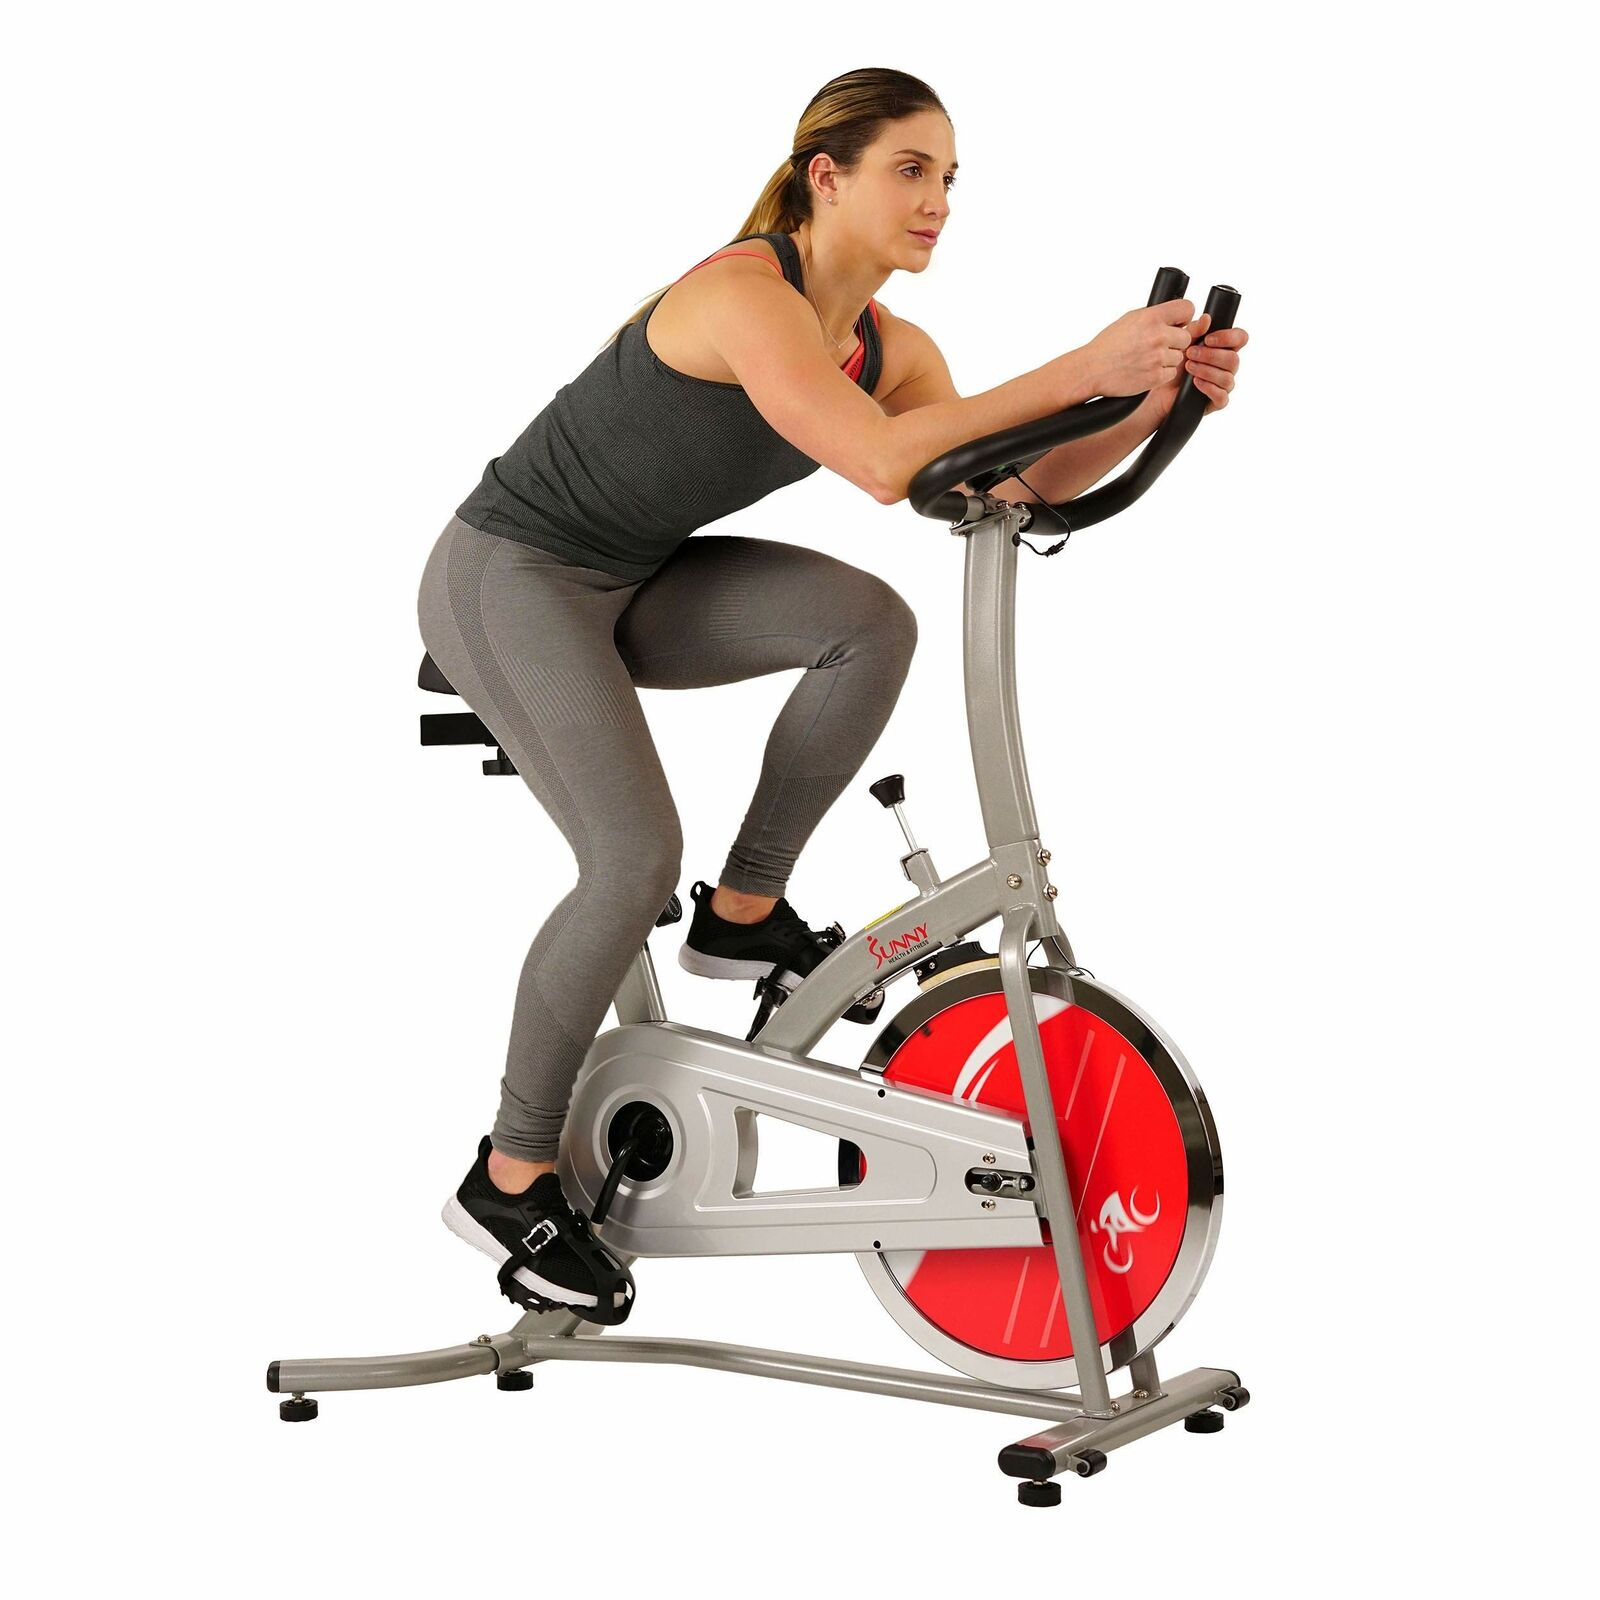 Cycling Exercise Stationary Bike Indoor Bicycle Gym Workout w/Monitor Flywheel bicycle bike cycling exercise flywheel gym indoor stationary workout